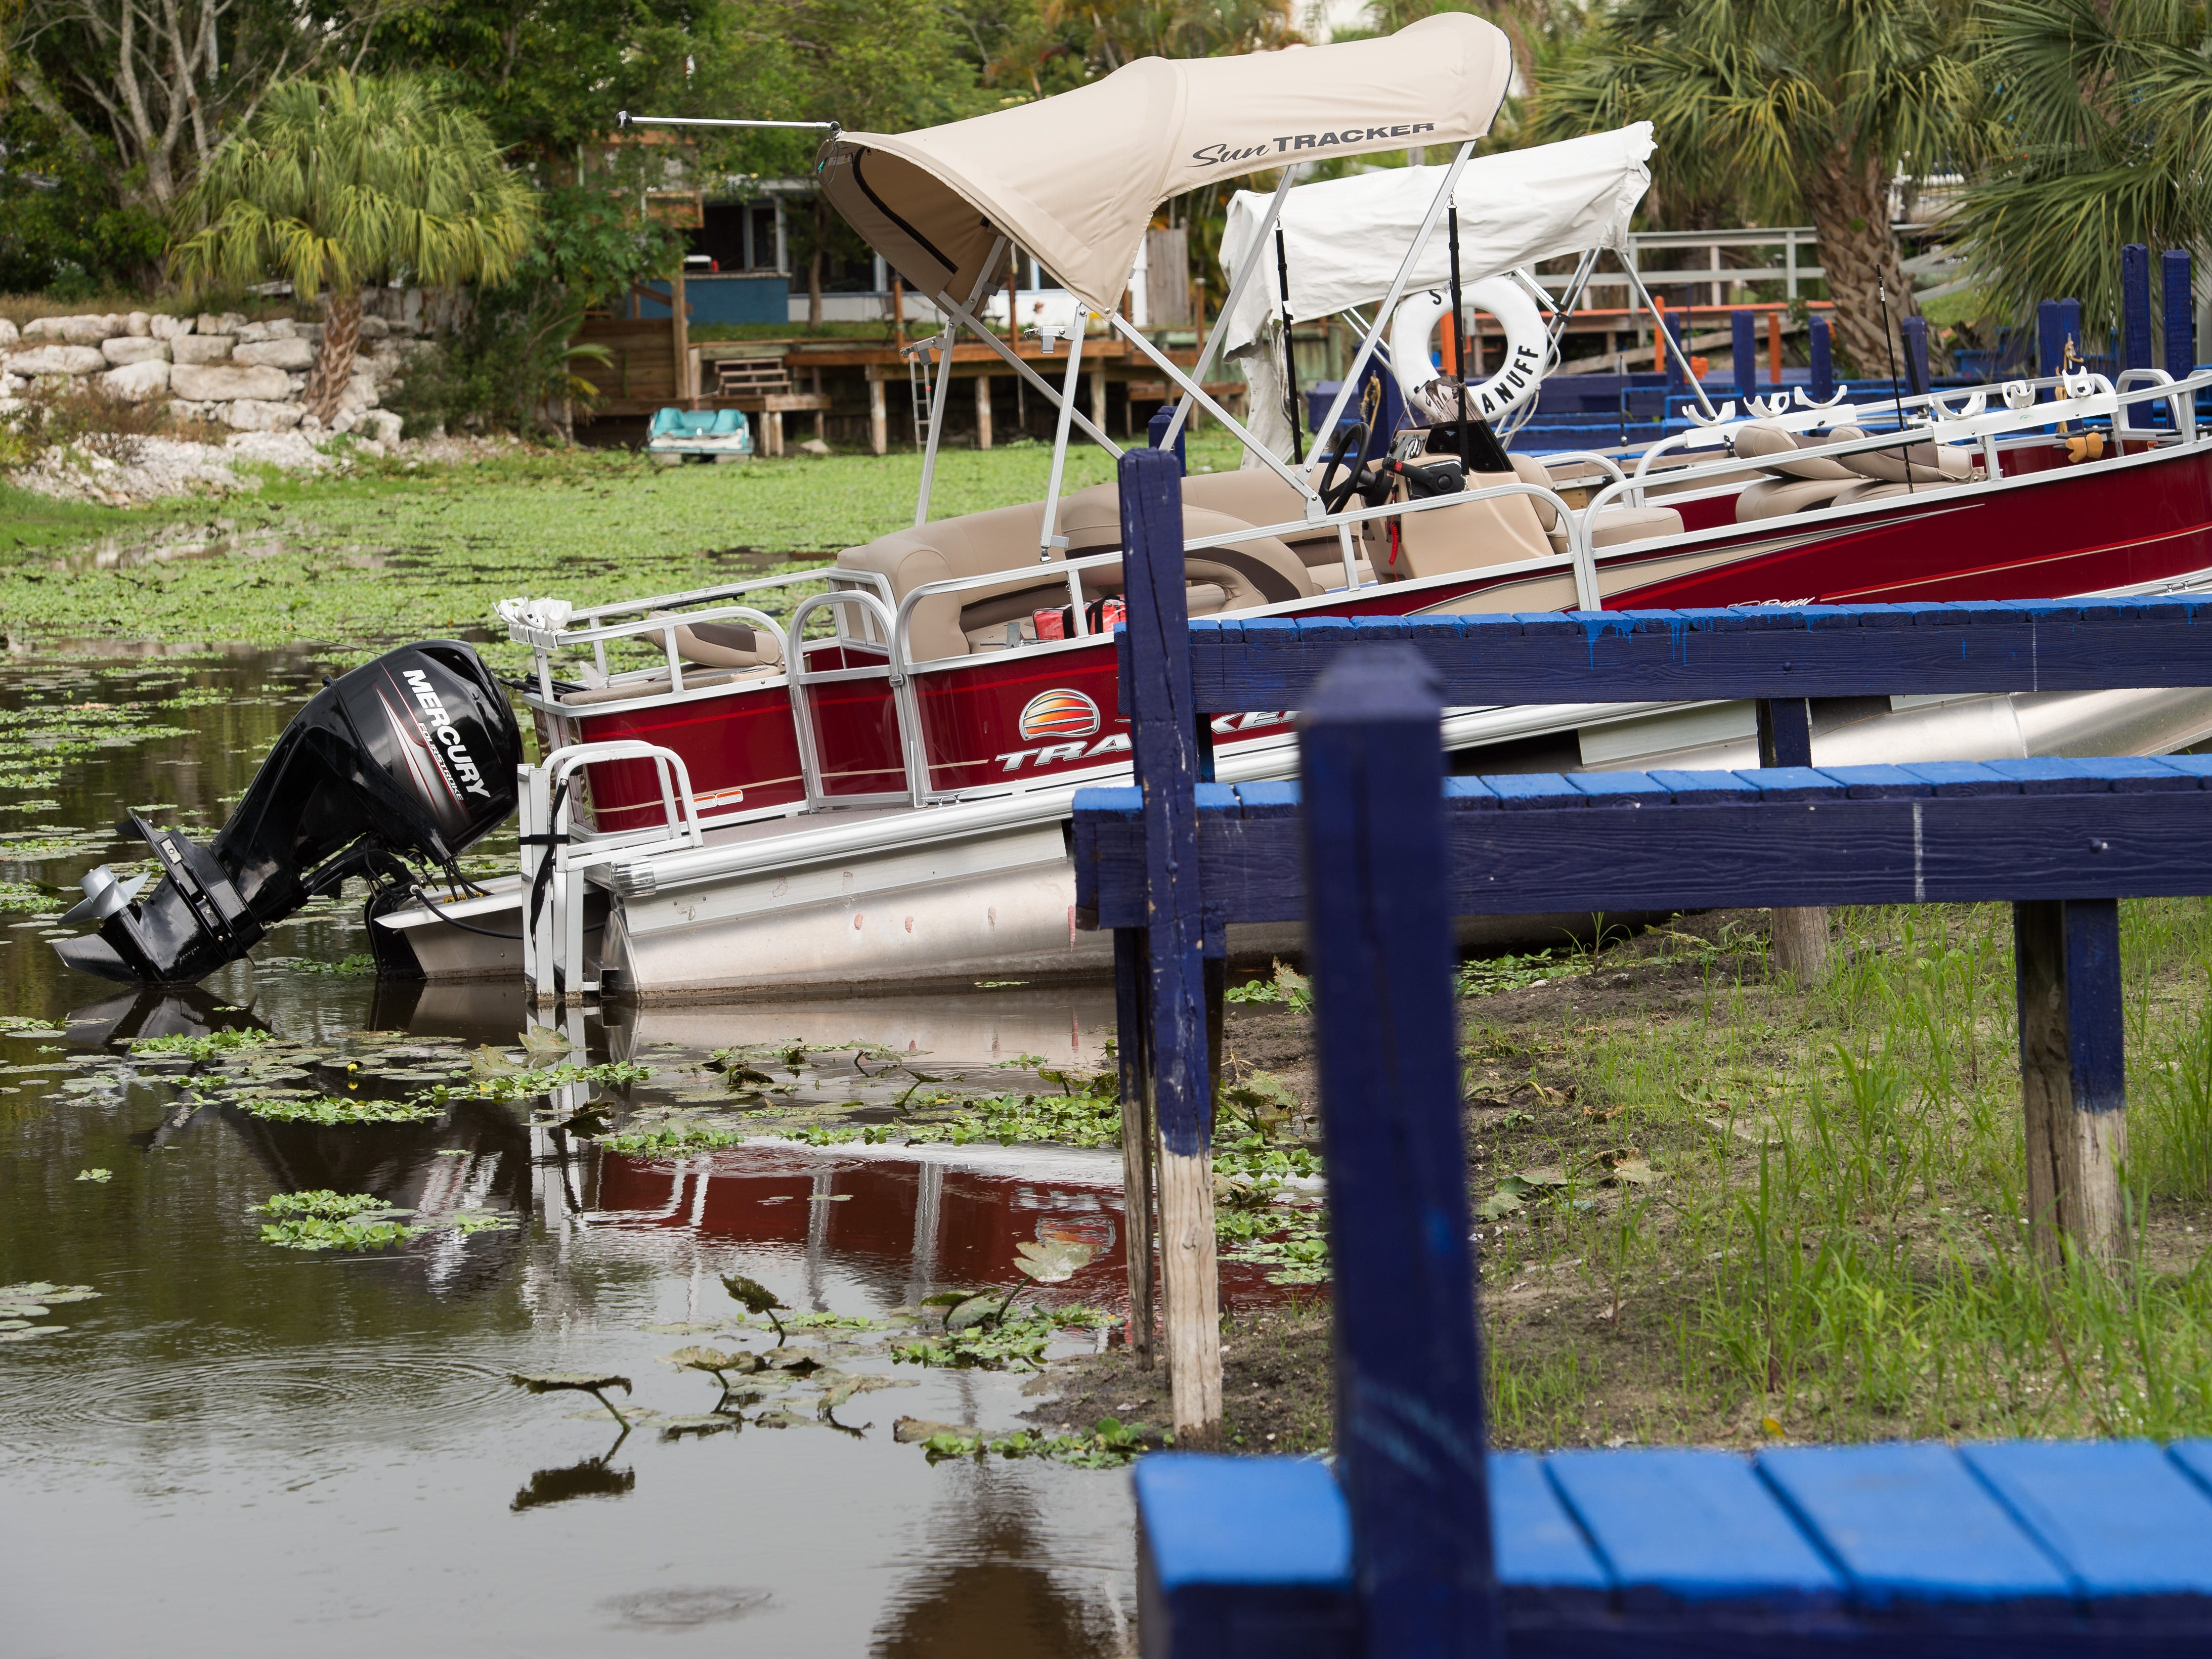 """A boat sits in shallow water at a canal dock at J & S Fish Camp near the border of Martin and Okeechobee counties Tuesday, May 7, 2019, off Lake Okeechobee. """"It's killing our business,"""" said business owner Terrie Birkett. """"I've got more cancellations right now than I've ever had because they can't go fishing."""""""